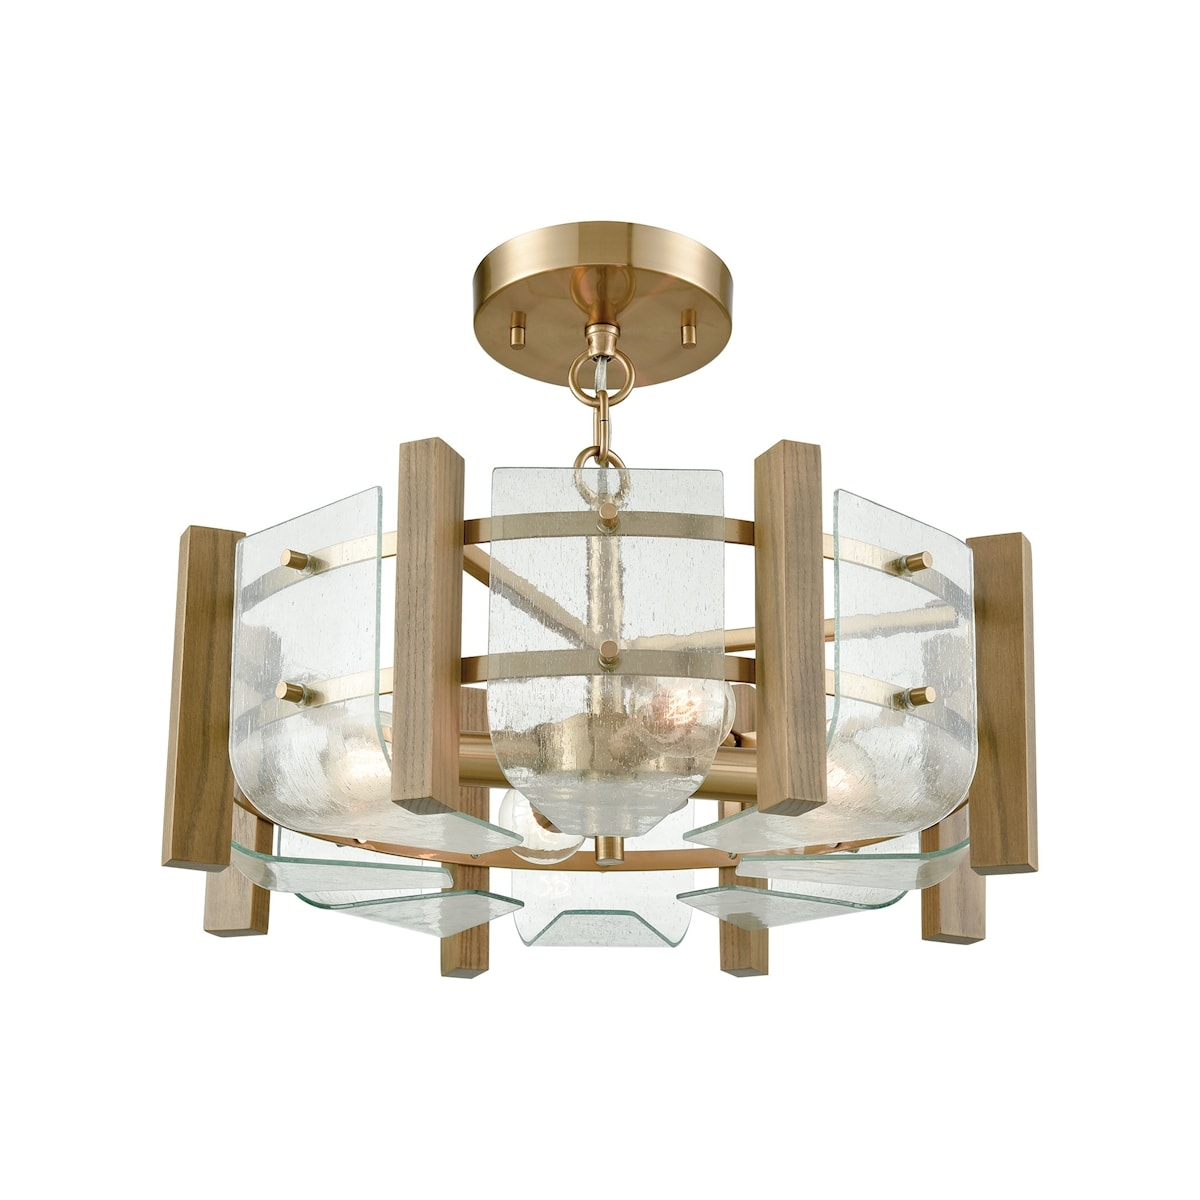 EL-32331/4_Vindalia 4 Light Semi Flush in Satin Brass with Wood Slats and Curved Glass